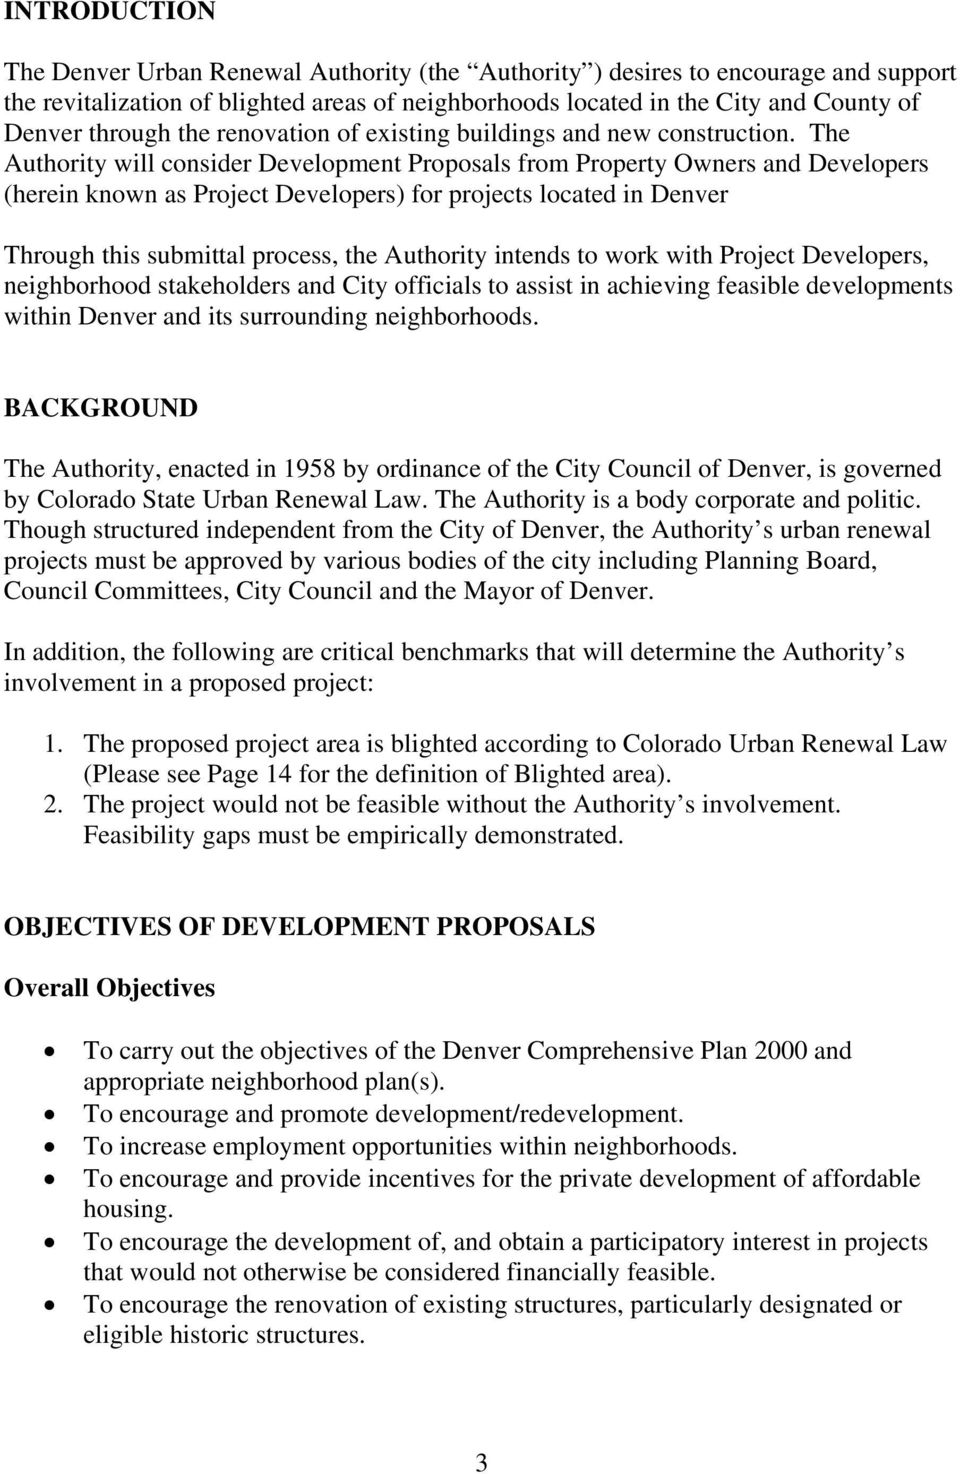 The Authority will consider Development Proposals from Property Owners and Developers (herein known as Project Developers) for projects located in Denver Through this submittal process, the Authority